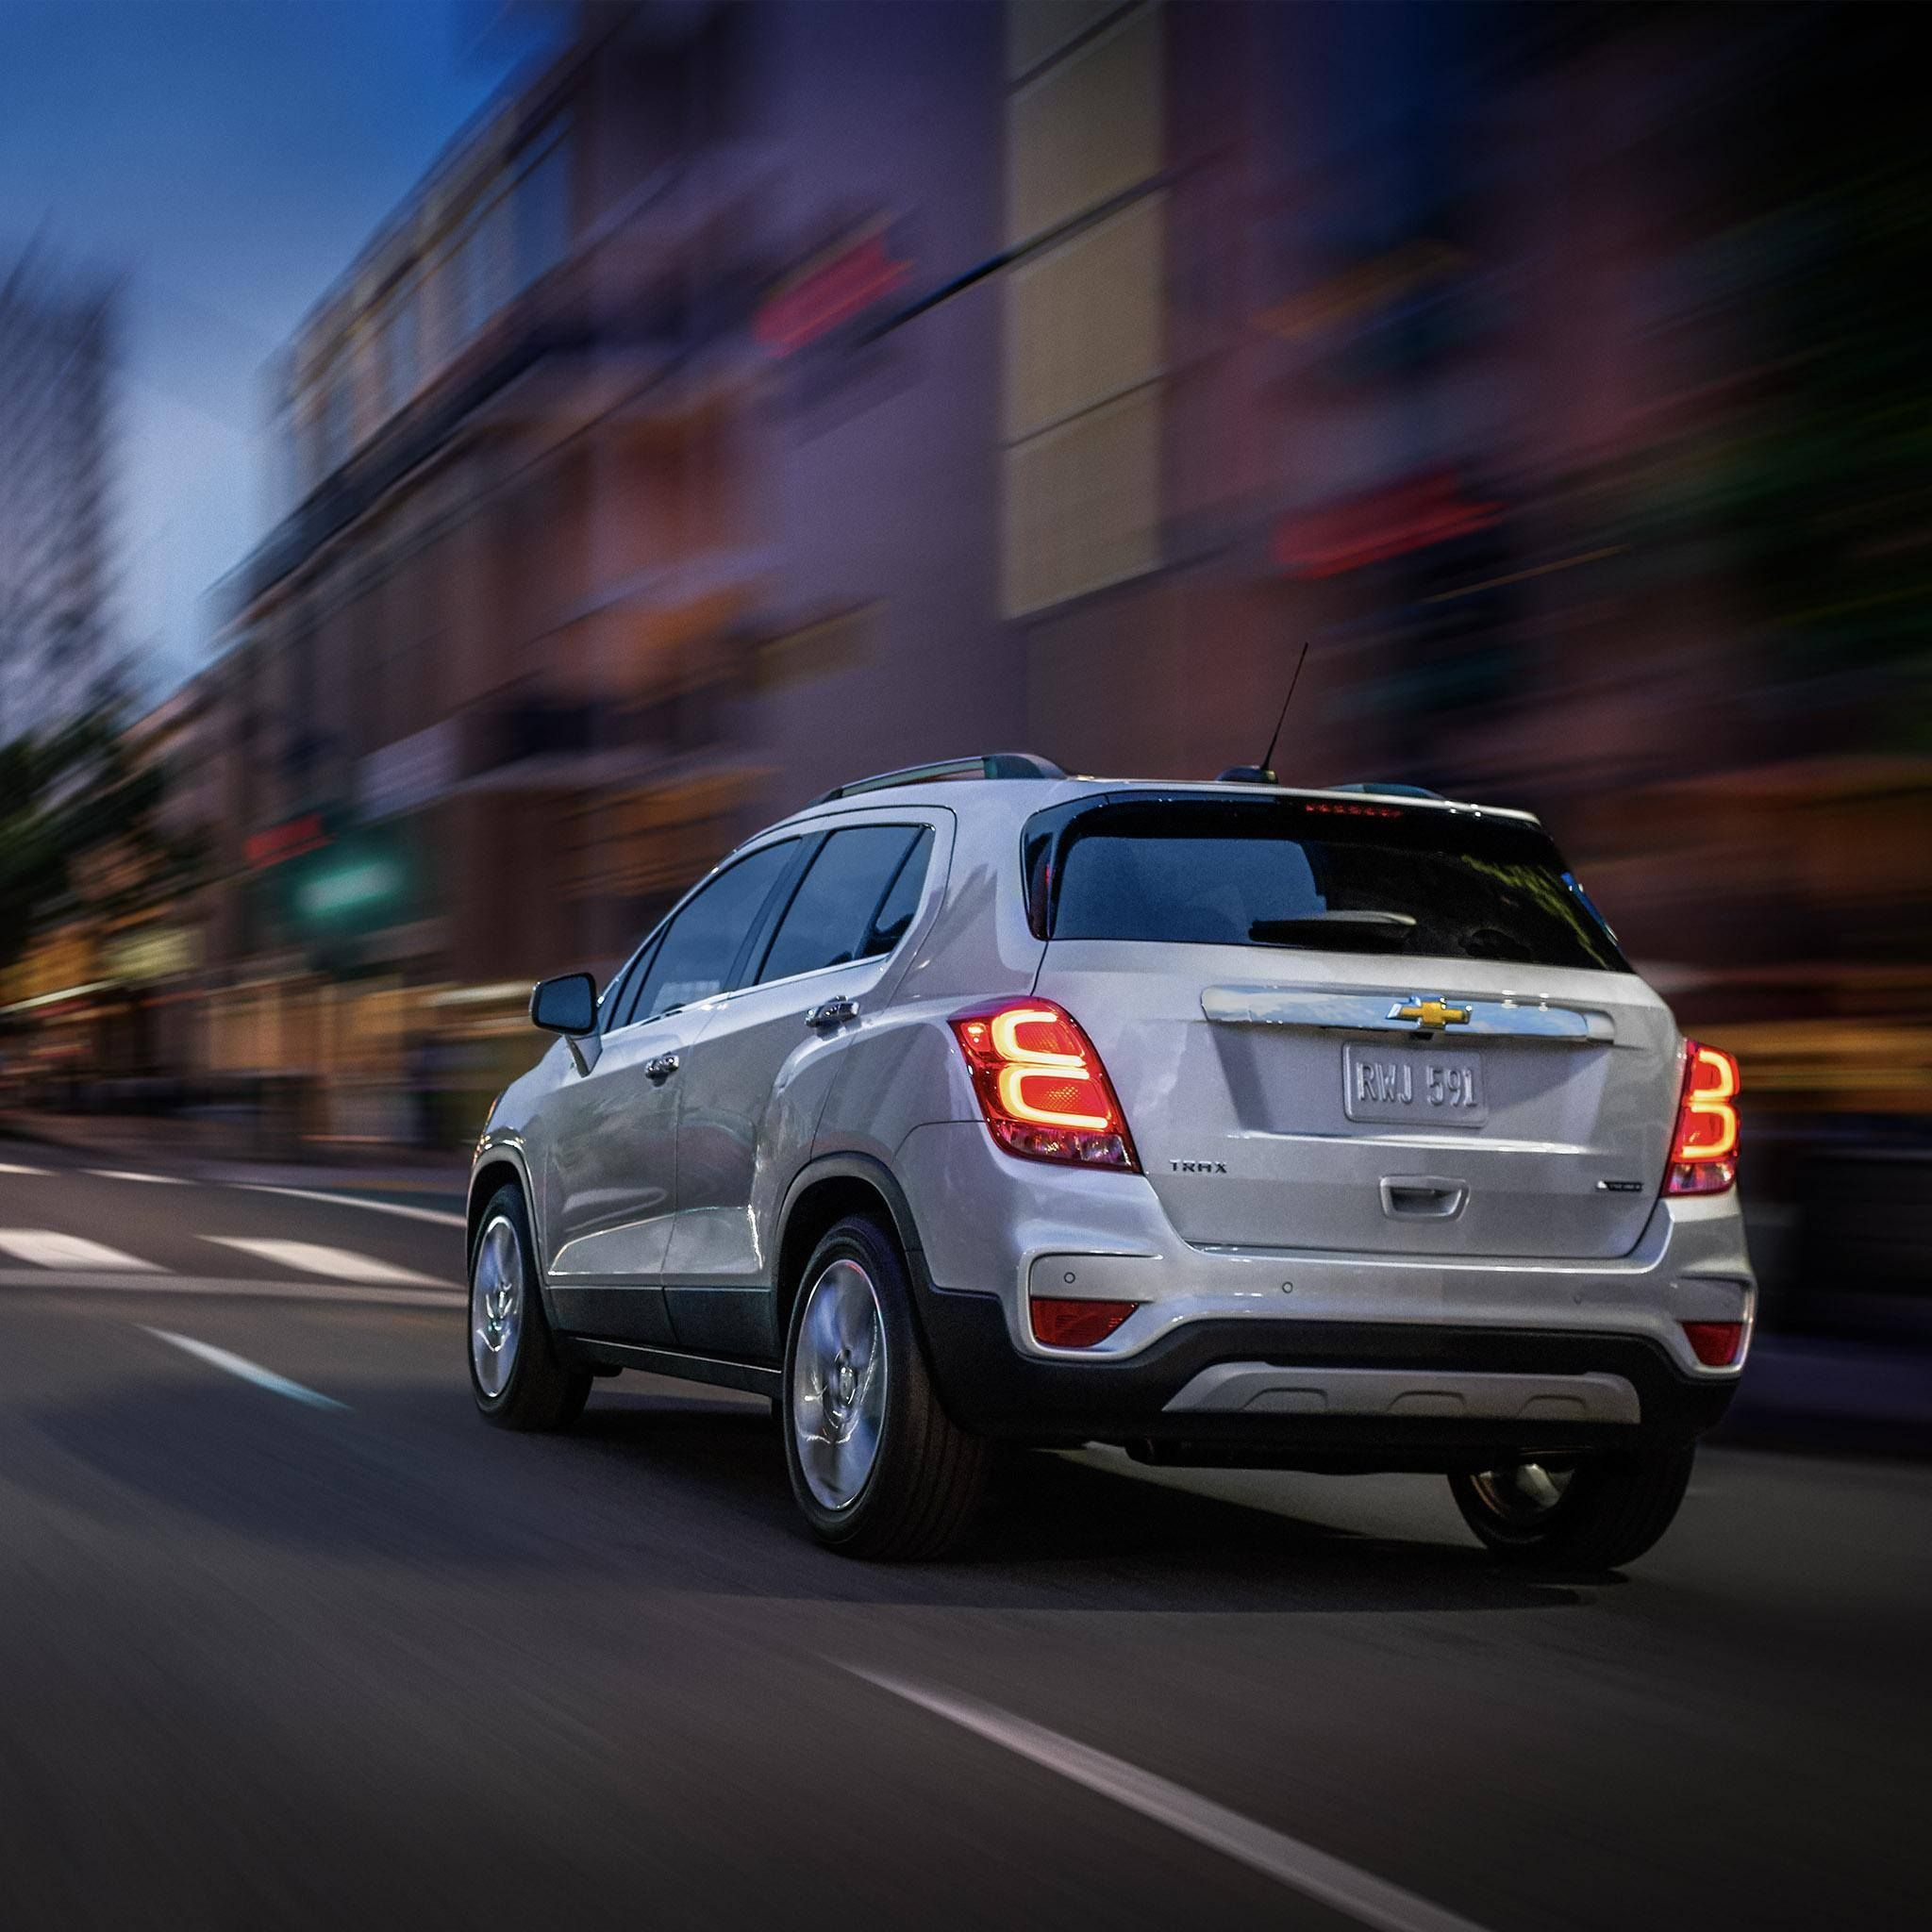 Take to the streets with a NEW Chevy Trax at Chevrolet Cadillac of